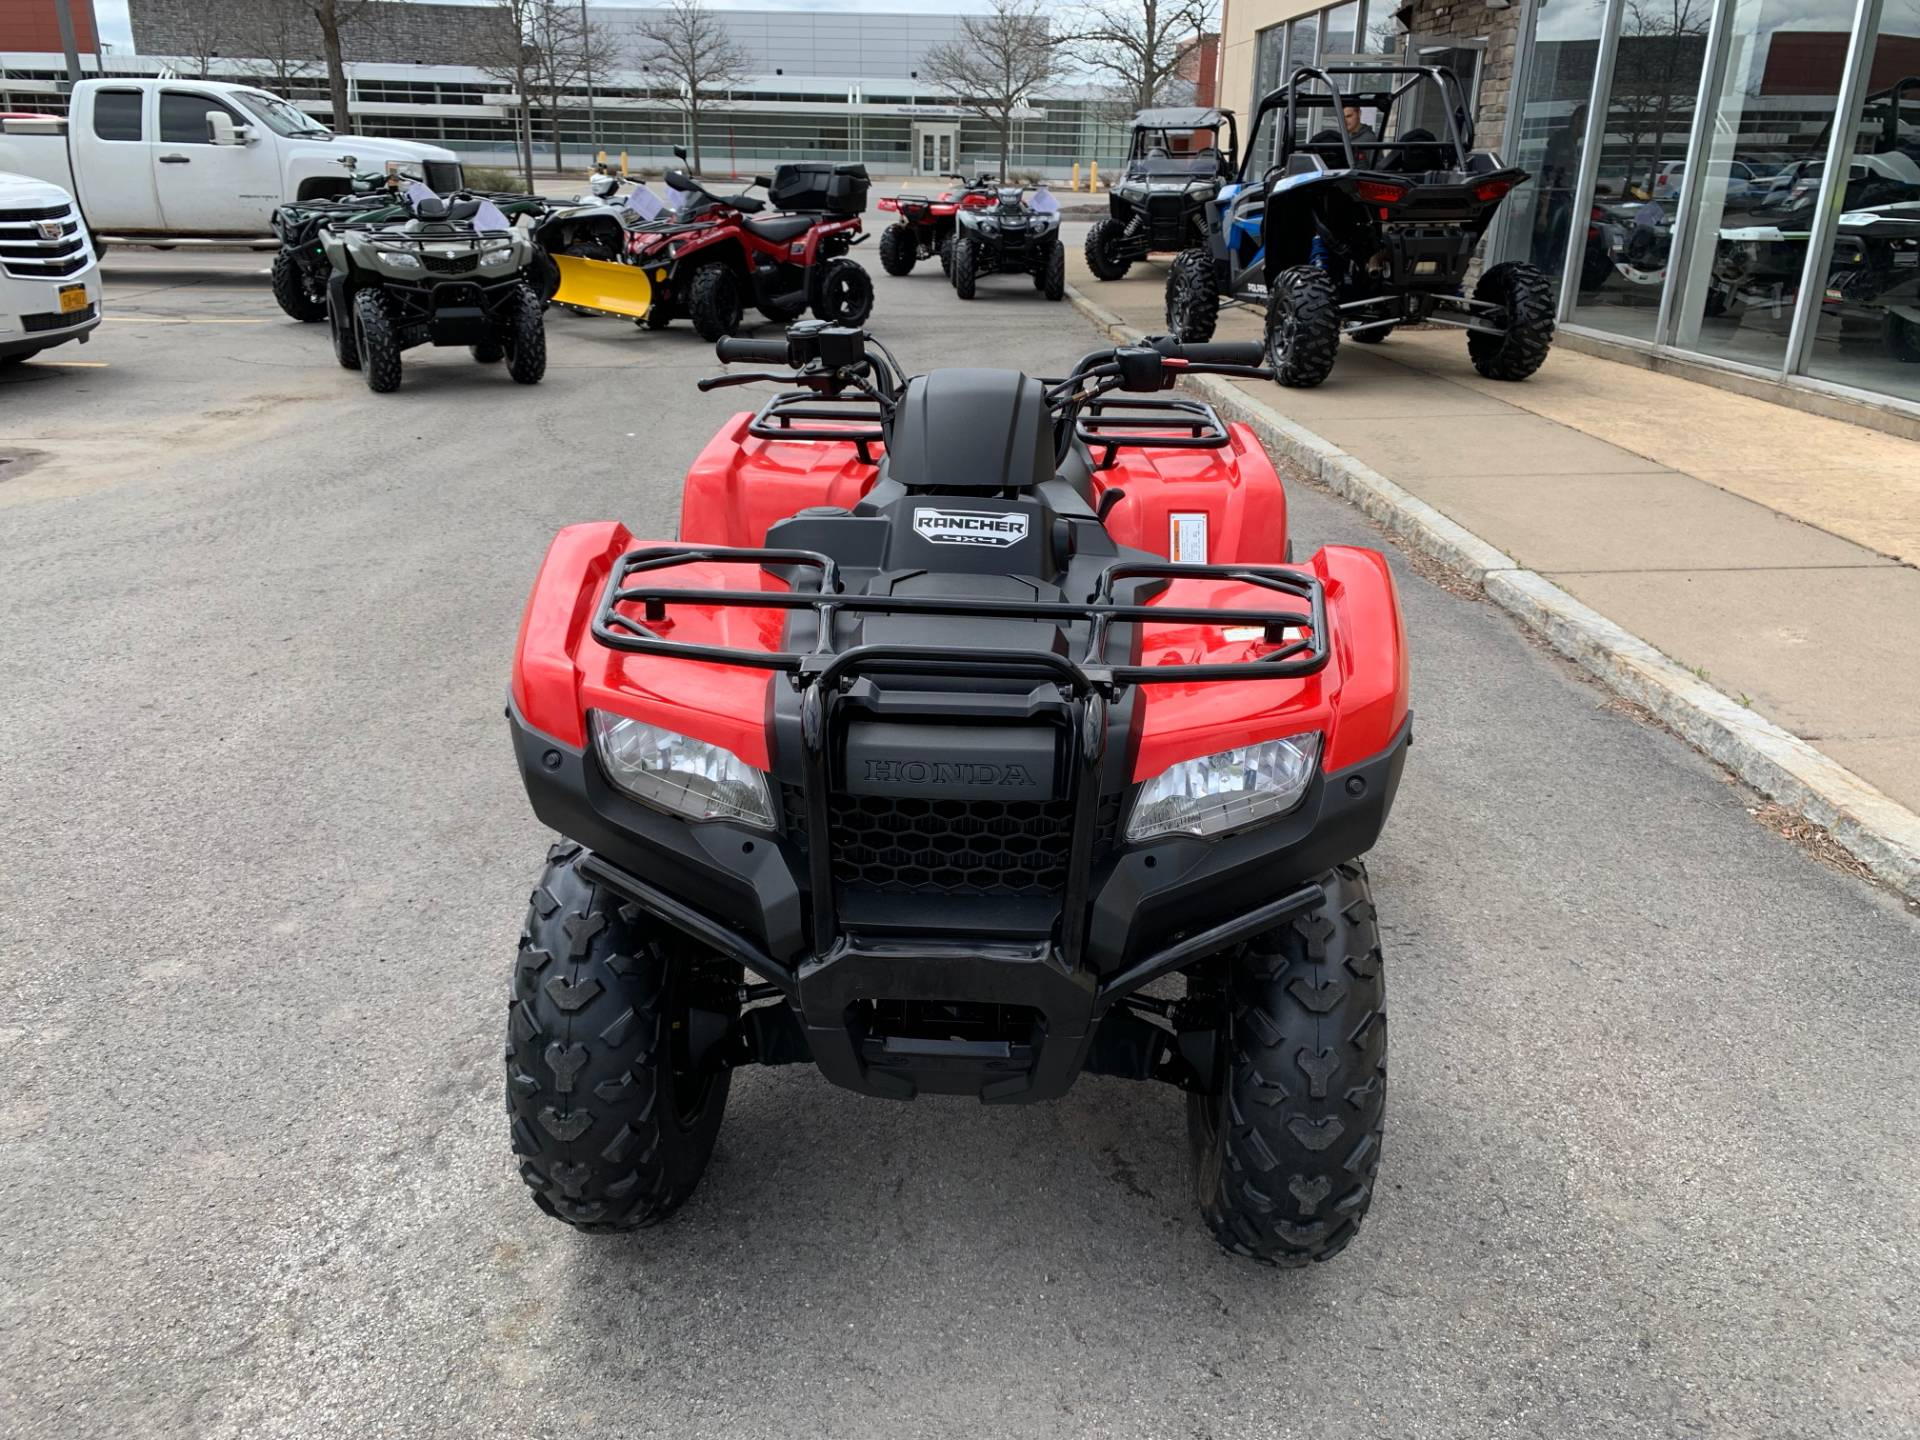 2018 Honda FourTrax Rancher 4x4 in Herkimer, New York - Photo 4